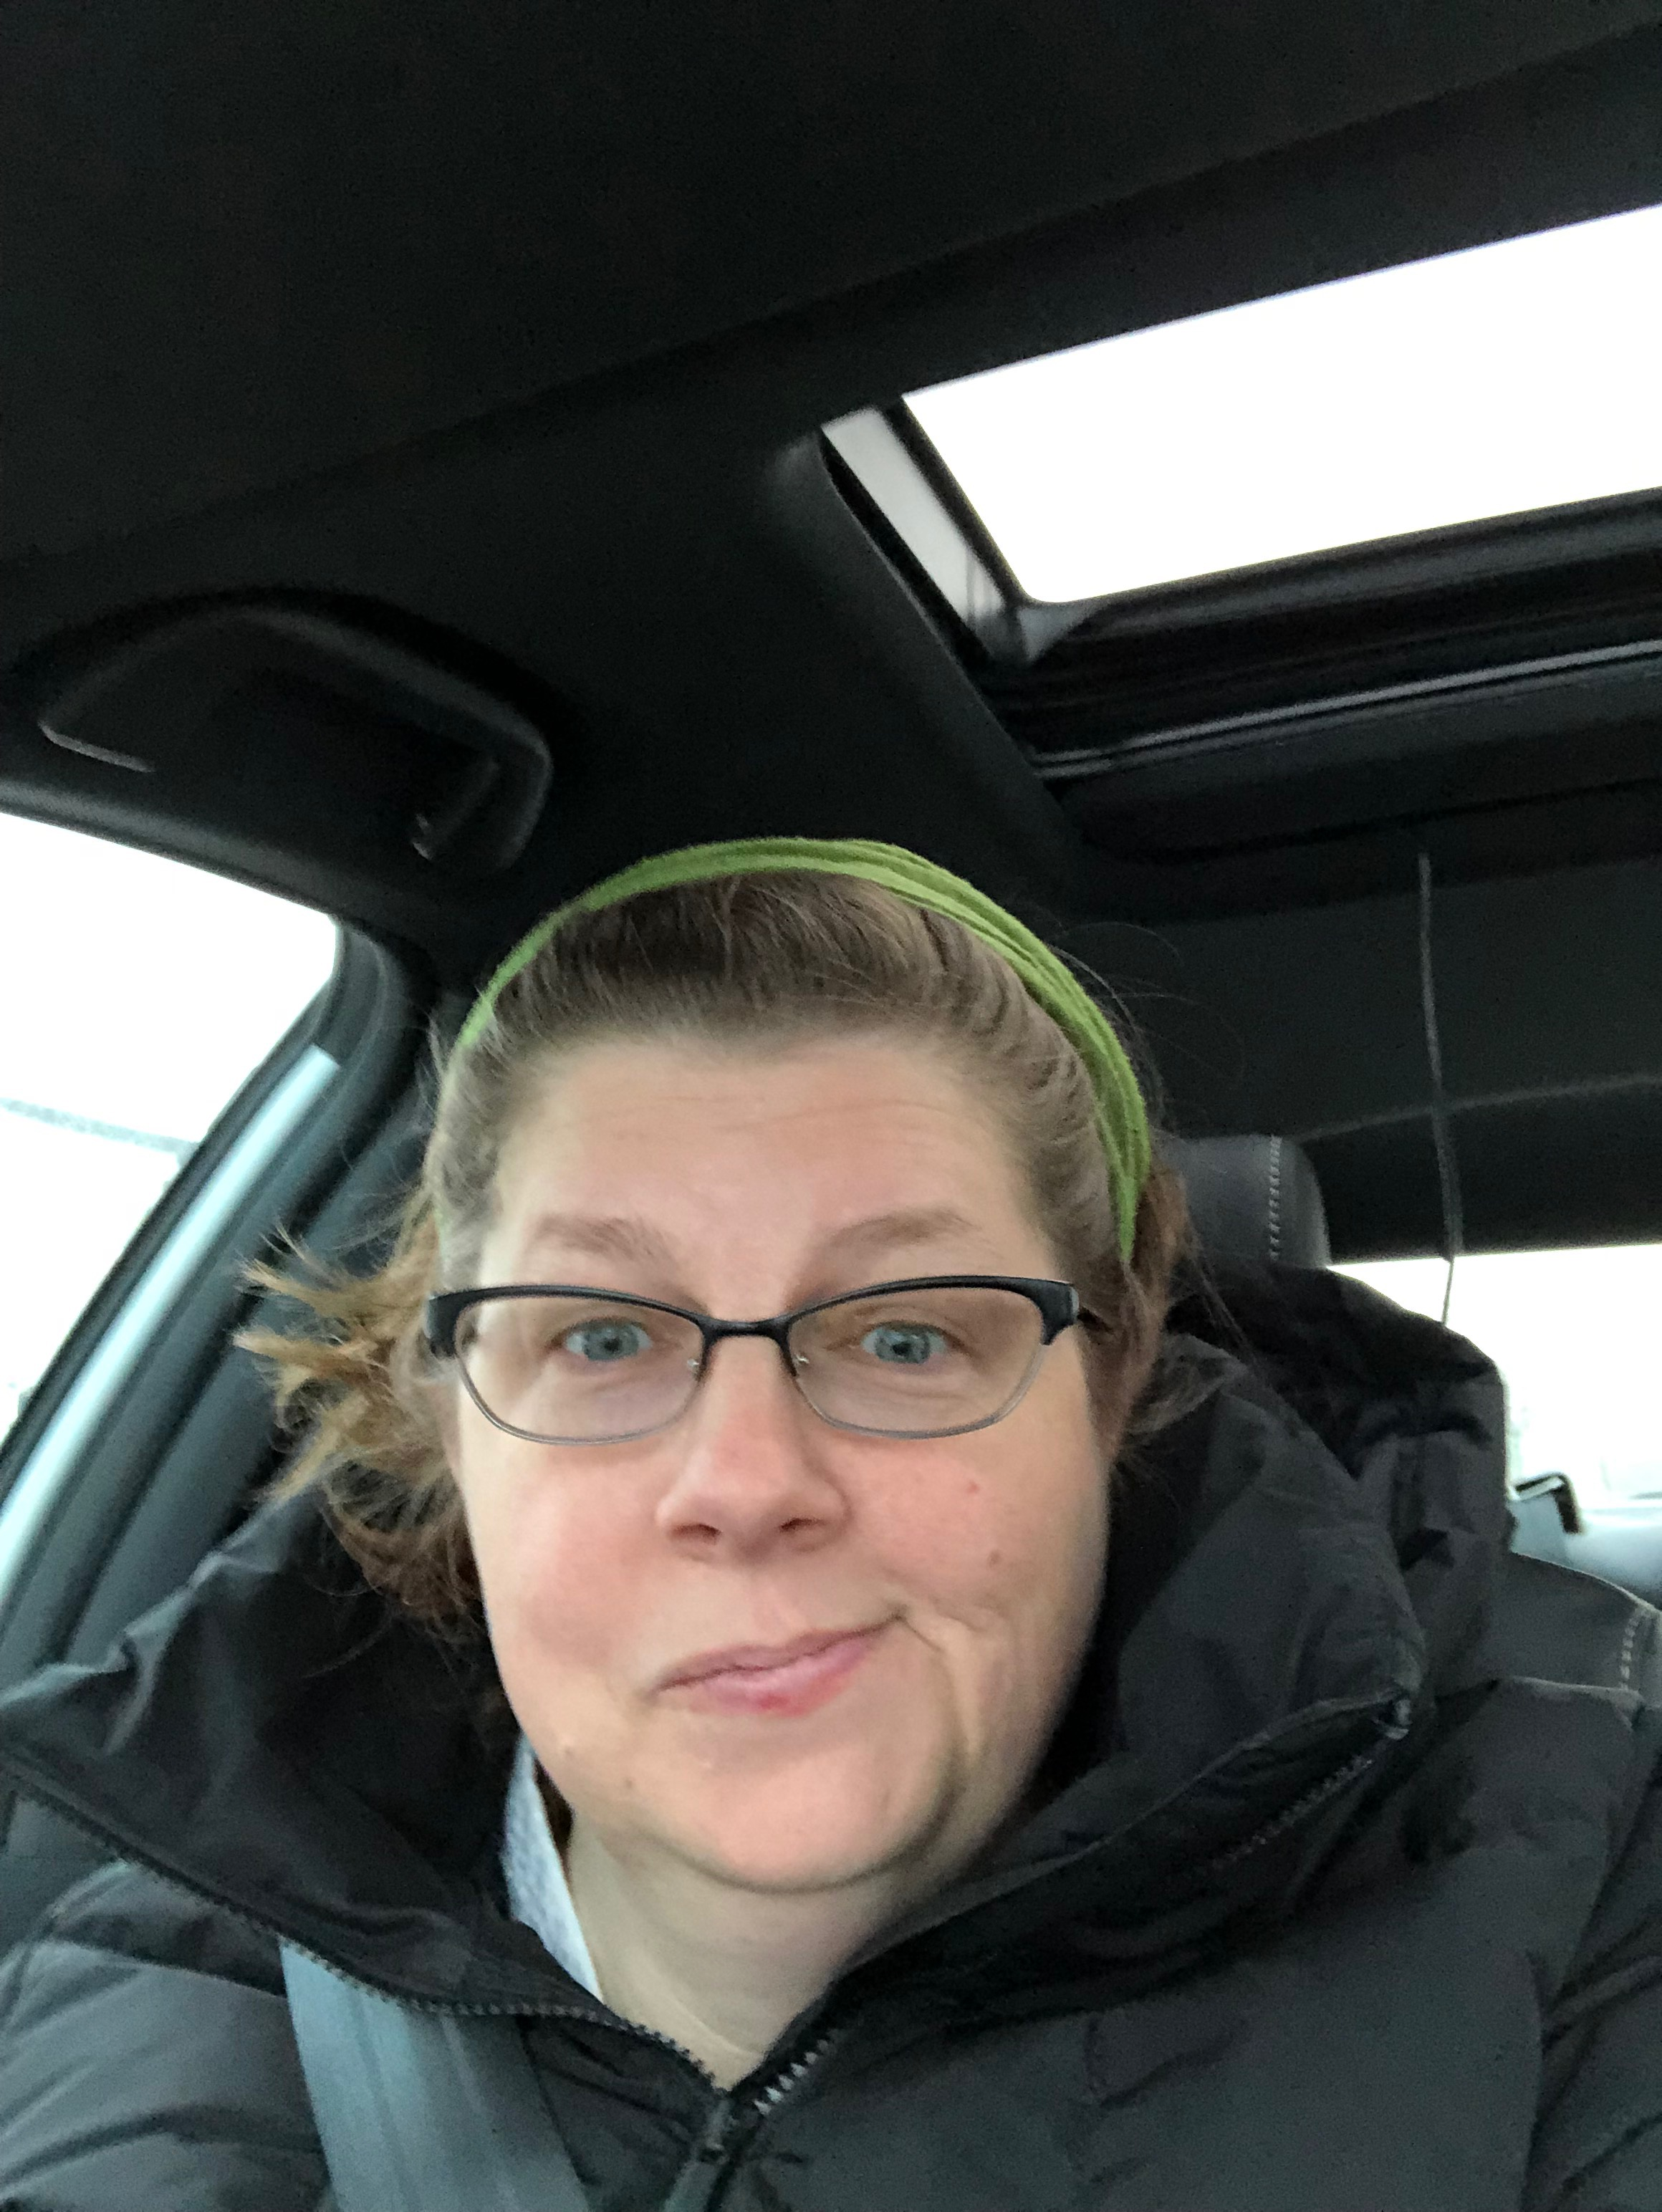 The author, a woman in her mid-forties, sits in the front passenger seat of a car. She has her brown hair back in a green bandana, she is wearing glasses and a black winter jacket, and she is smirking and looking pleased with herself.